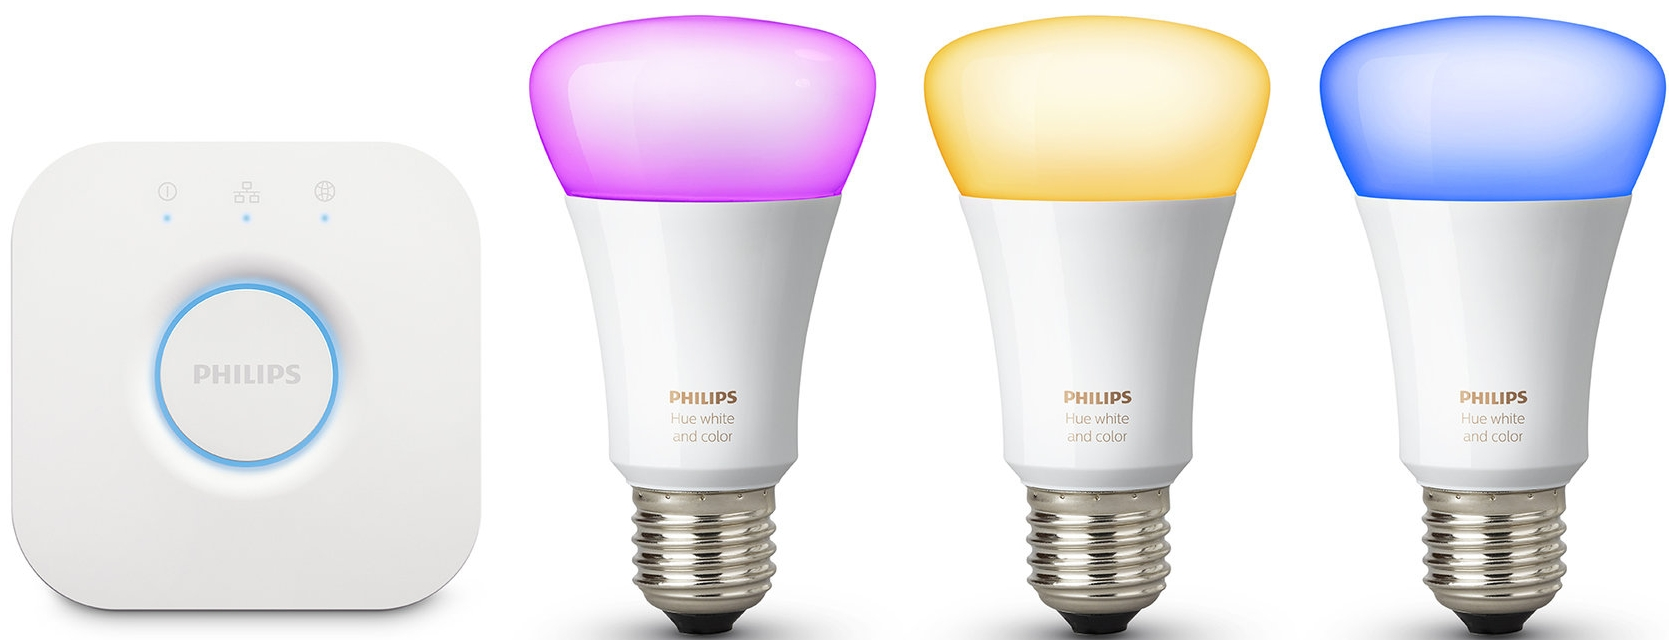 Philips Hue White and Color Ambiance A19 Starter Kit at Bed Bath & Beyond, $199.99